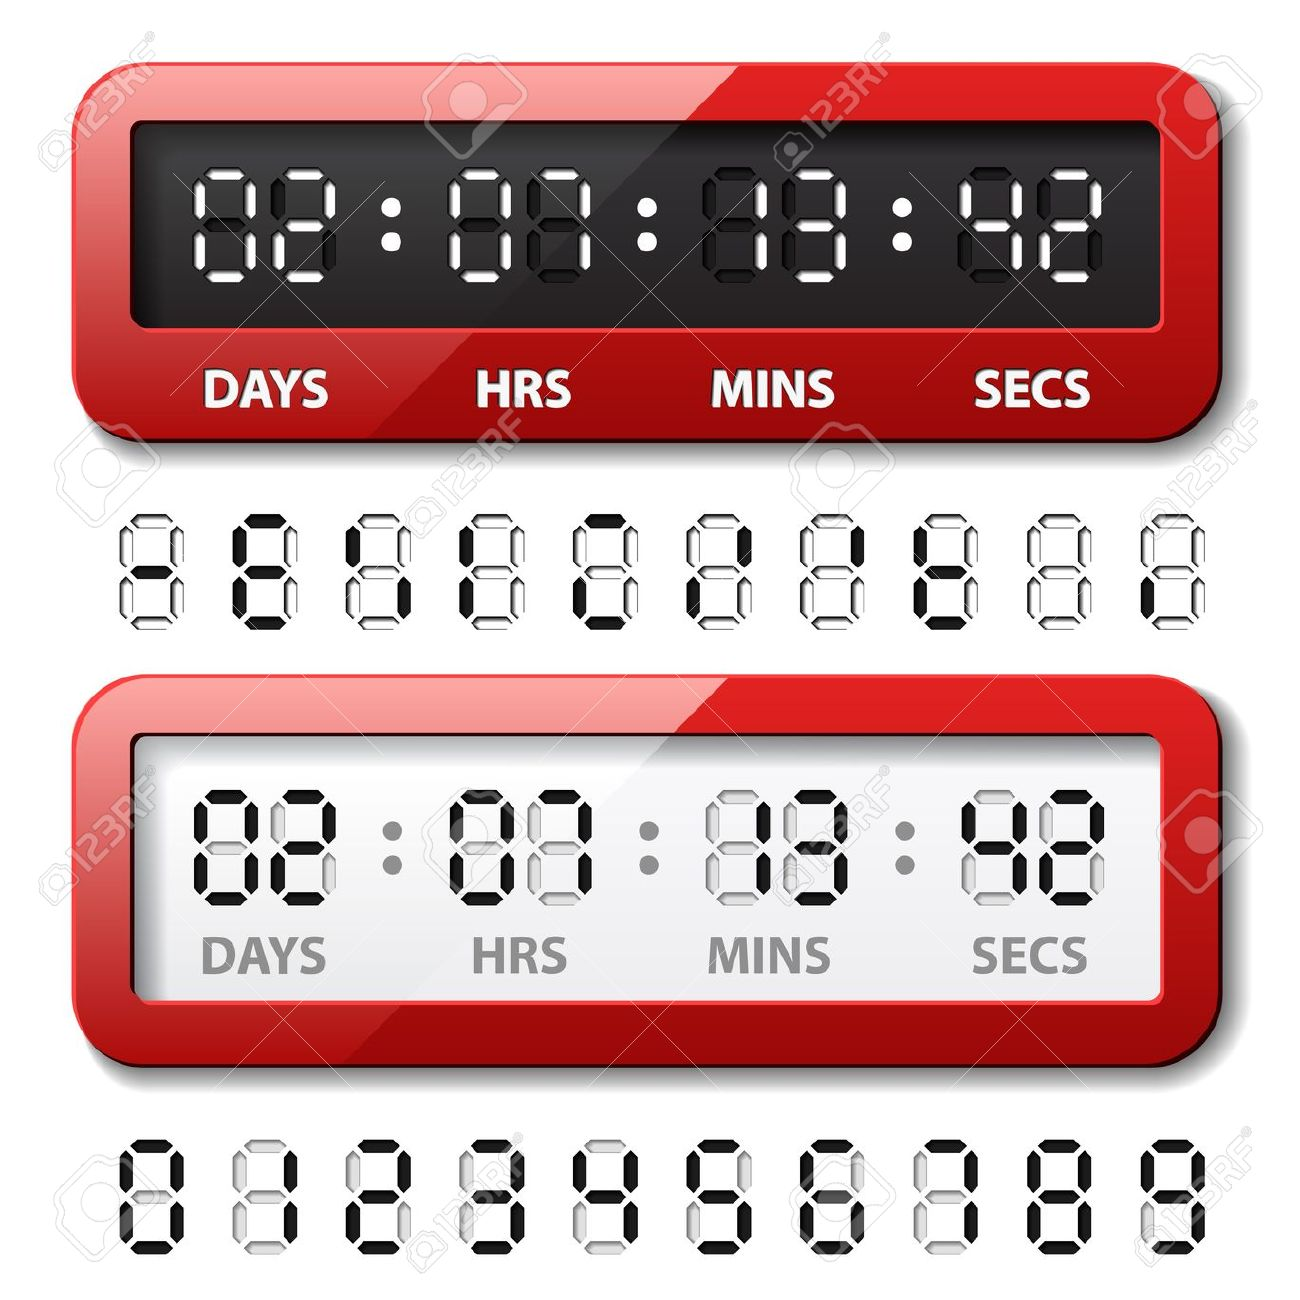 Countdown timer clipart graphic freeuse download Timer Clipart (3290) Free Clipart Images — Clipartwork graphic freeuse download